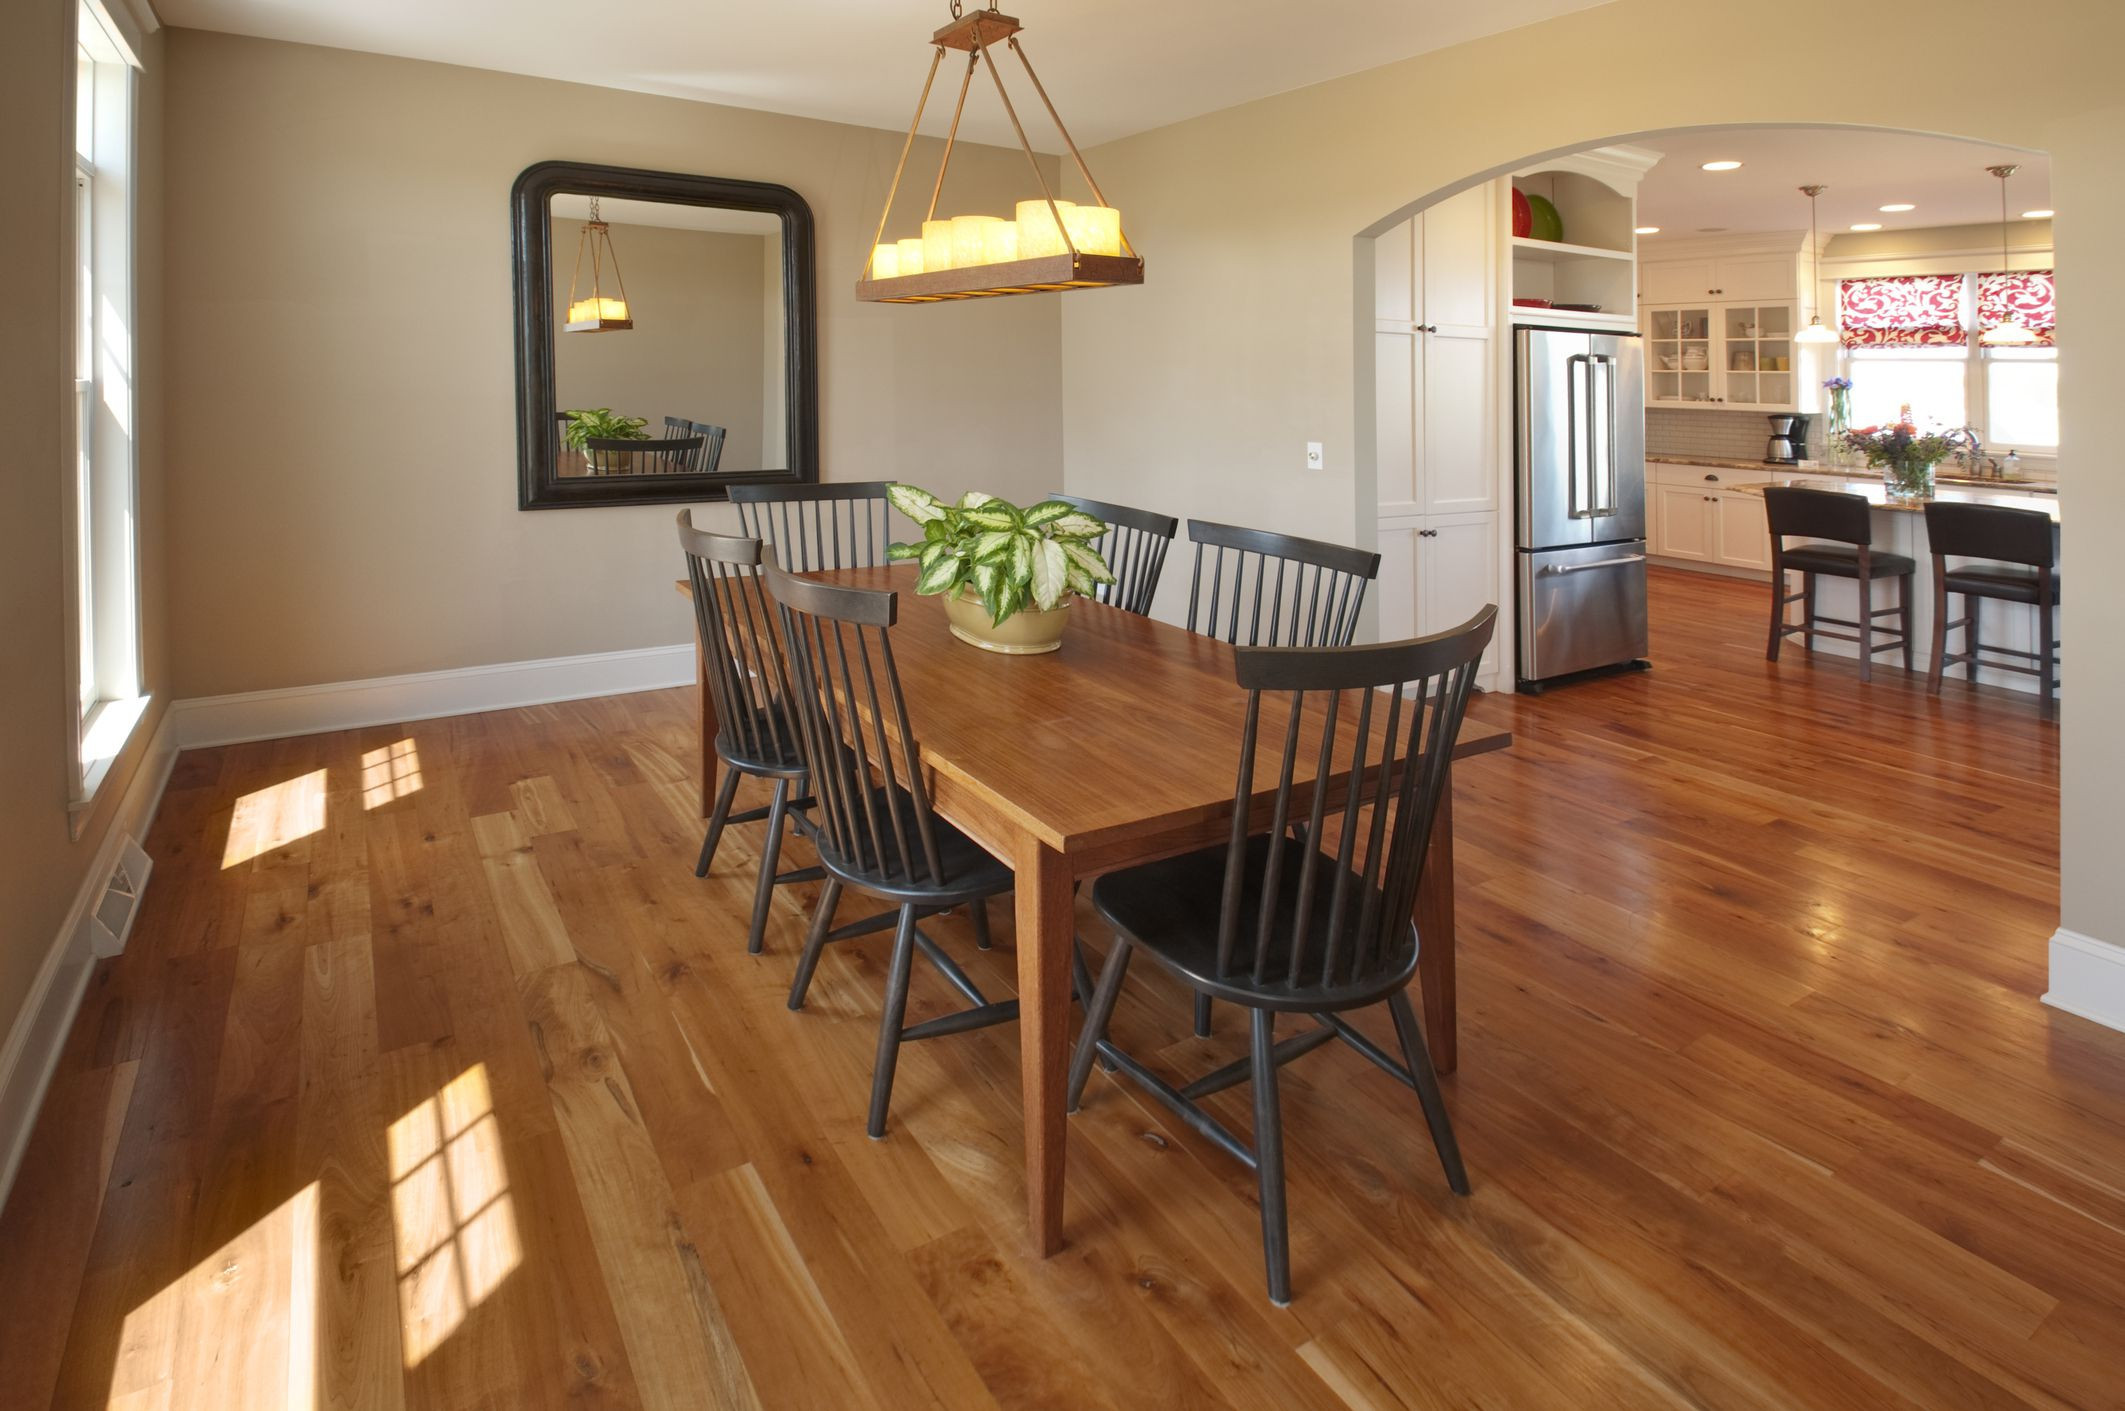 resurfacing hardwood floors without sanding of diy hardwood floor refinishing a beginner s overview of hardwood in diy hardwood floor refinishing a beginner s overview of hardwood flooring